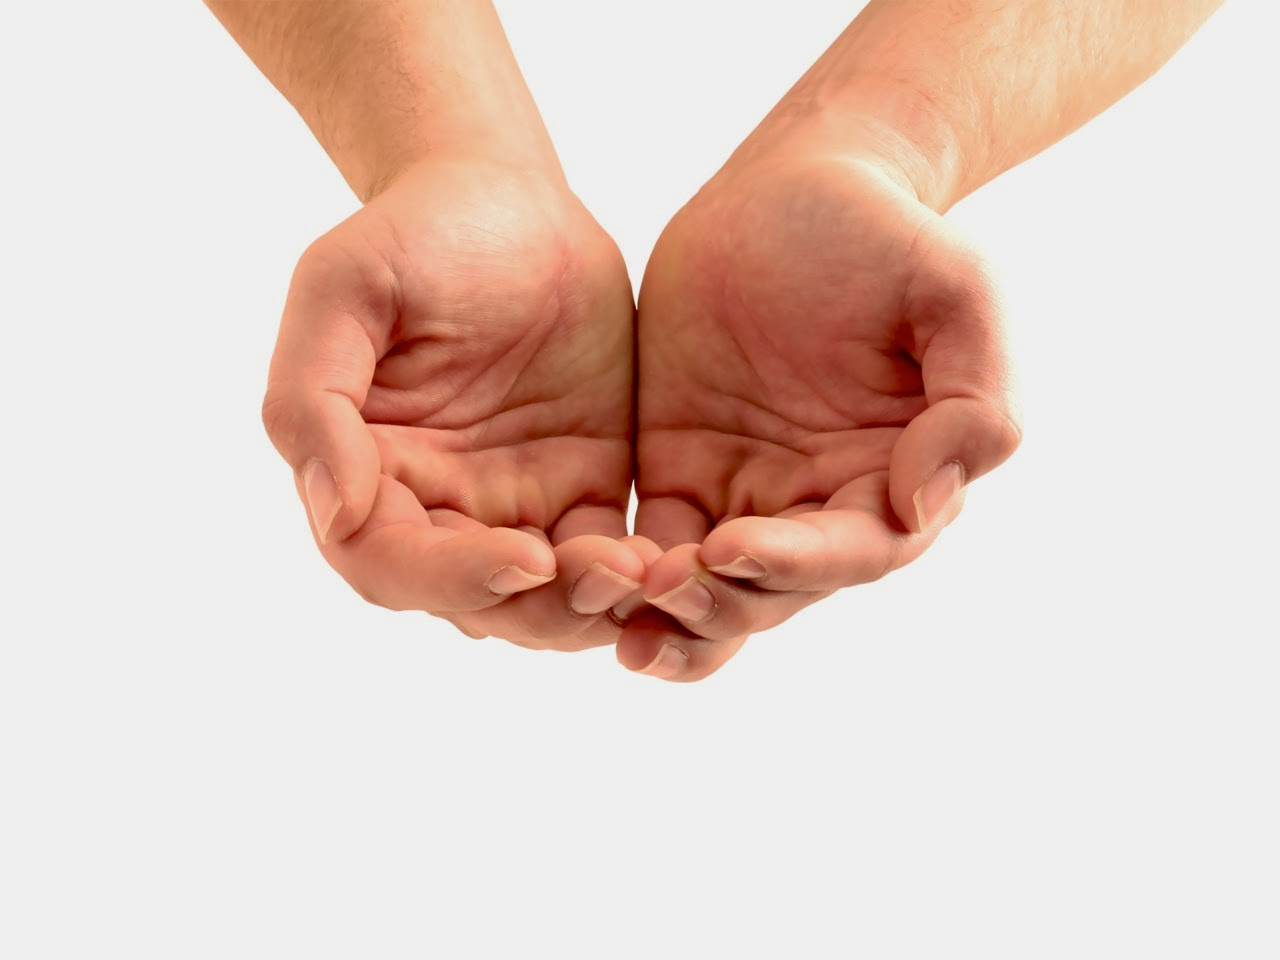 PNG HD Of Hands - 143270